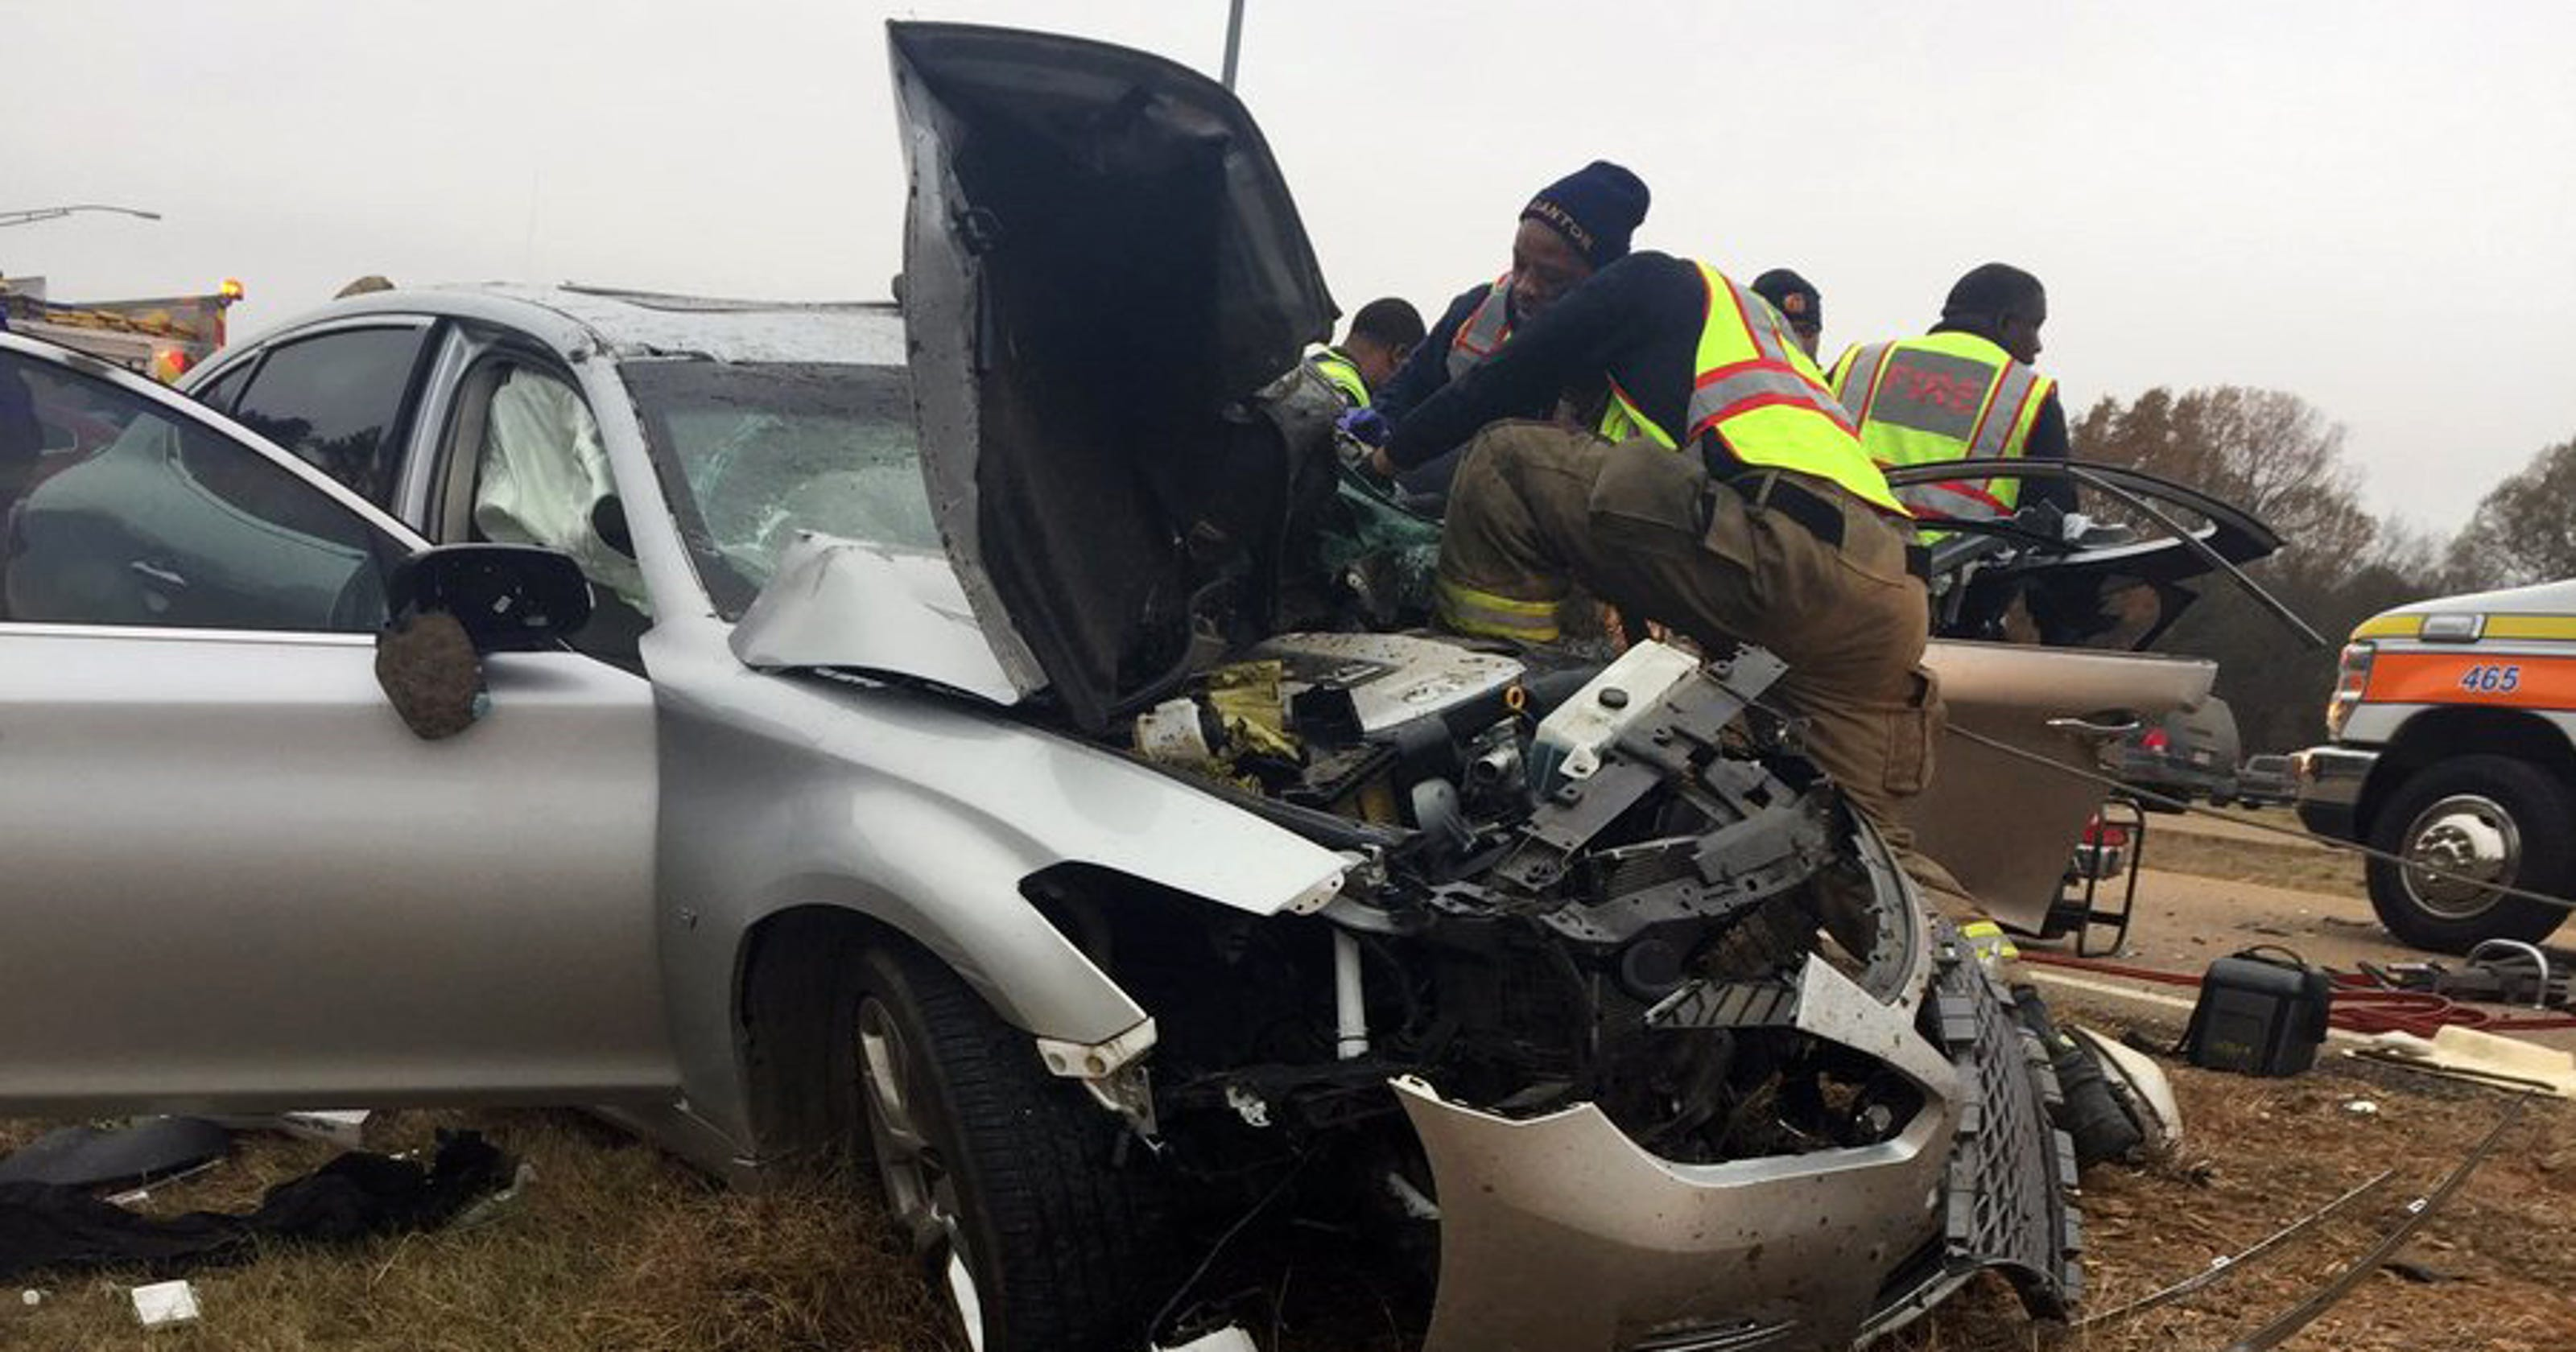 3 vehicle accident with injuries on Nissan Drive